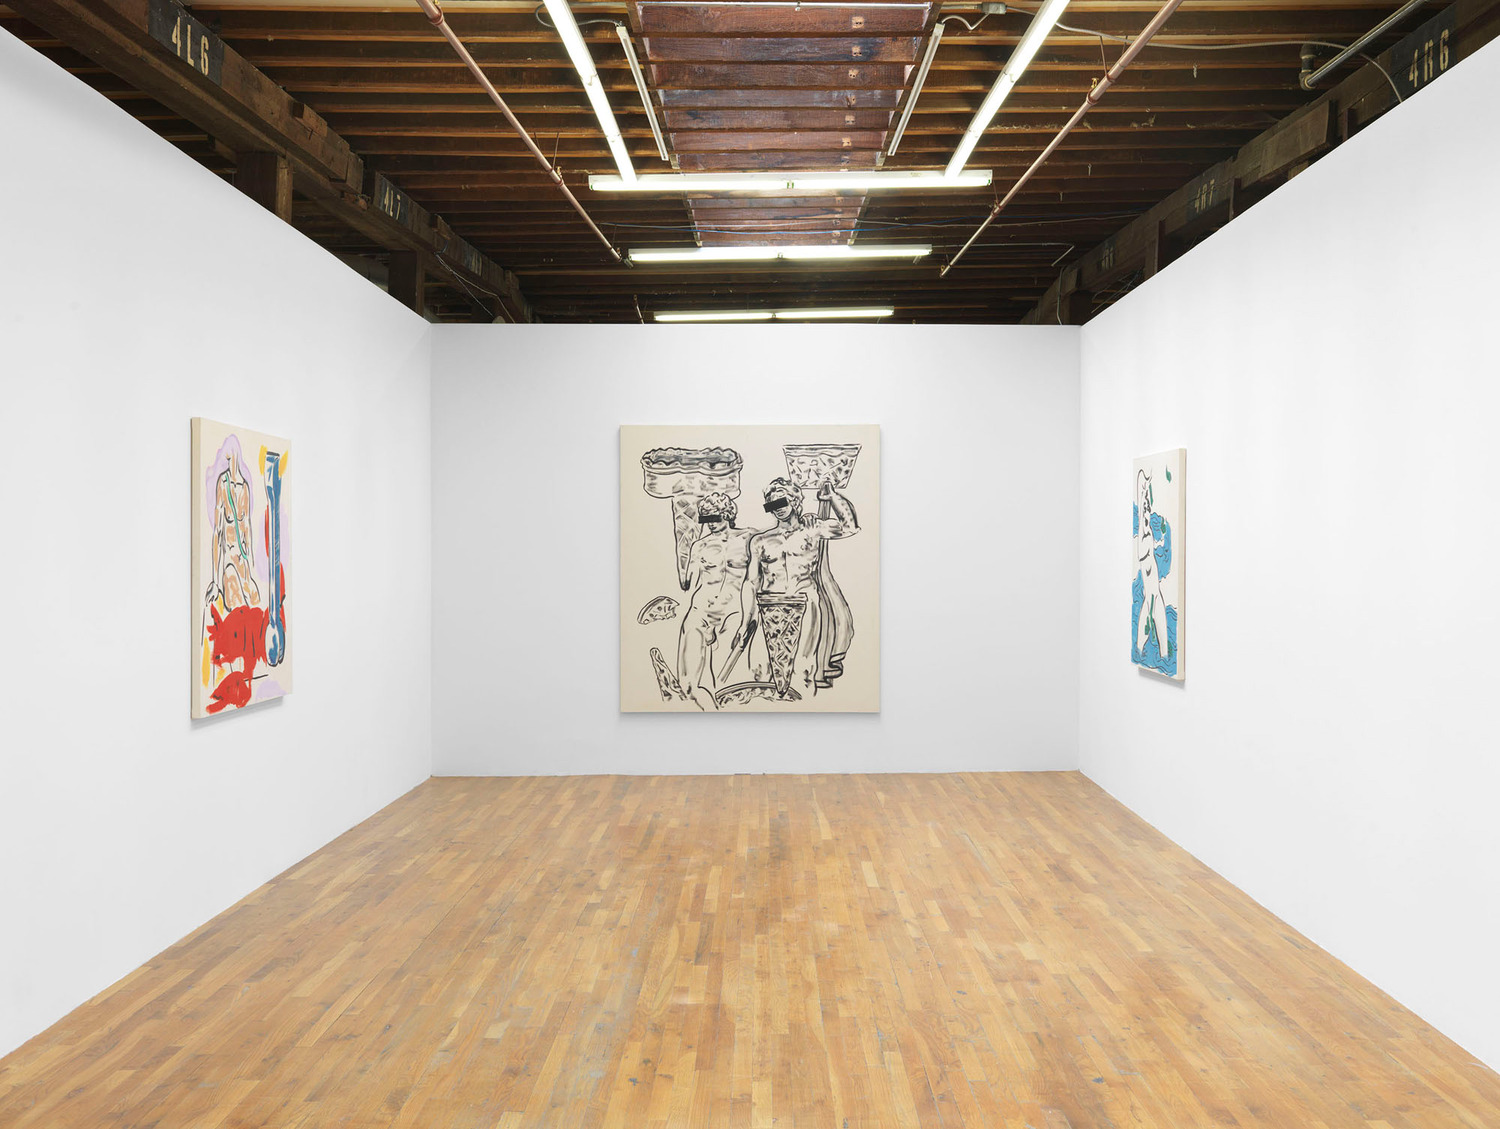 Installation view 'The Effects of Sugar', Still House Group, New York, 2014